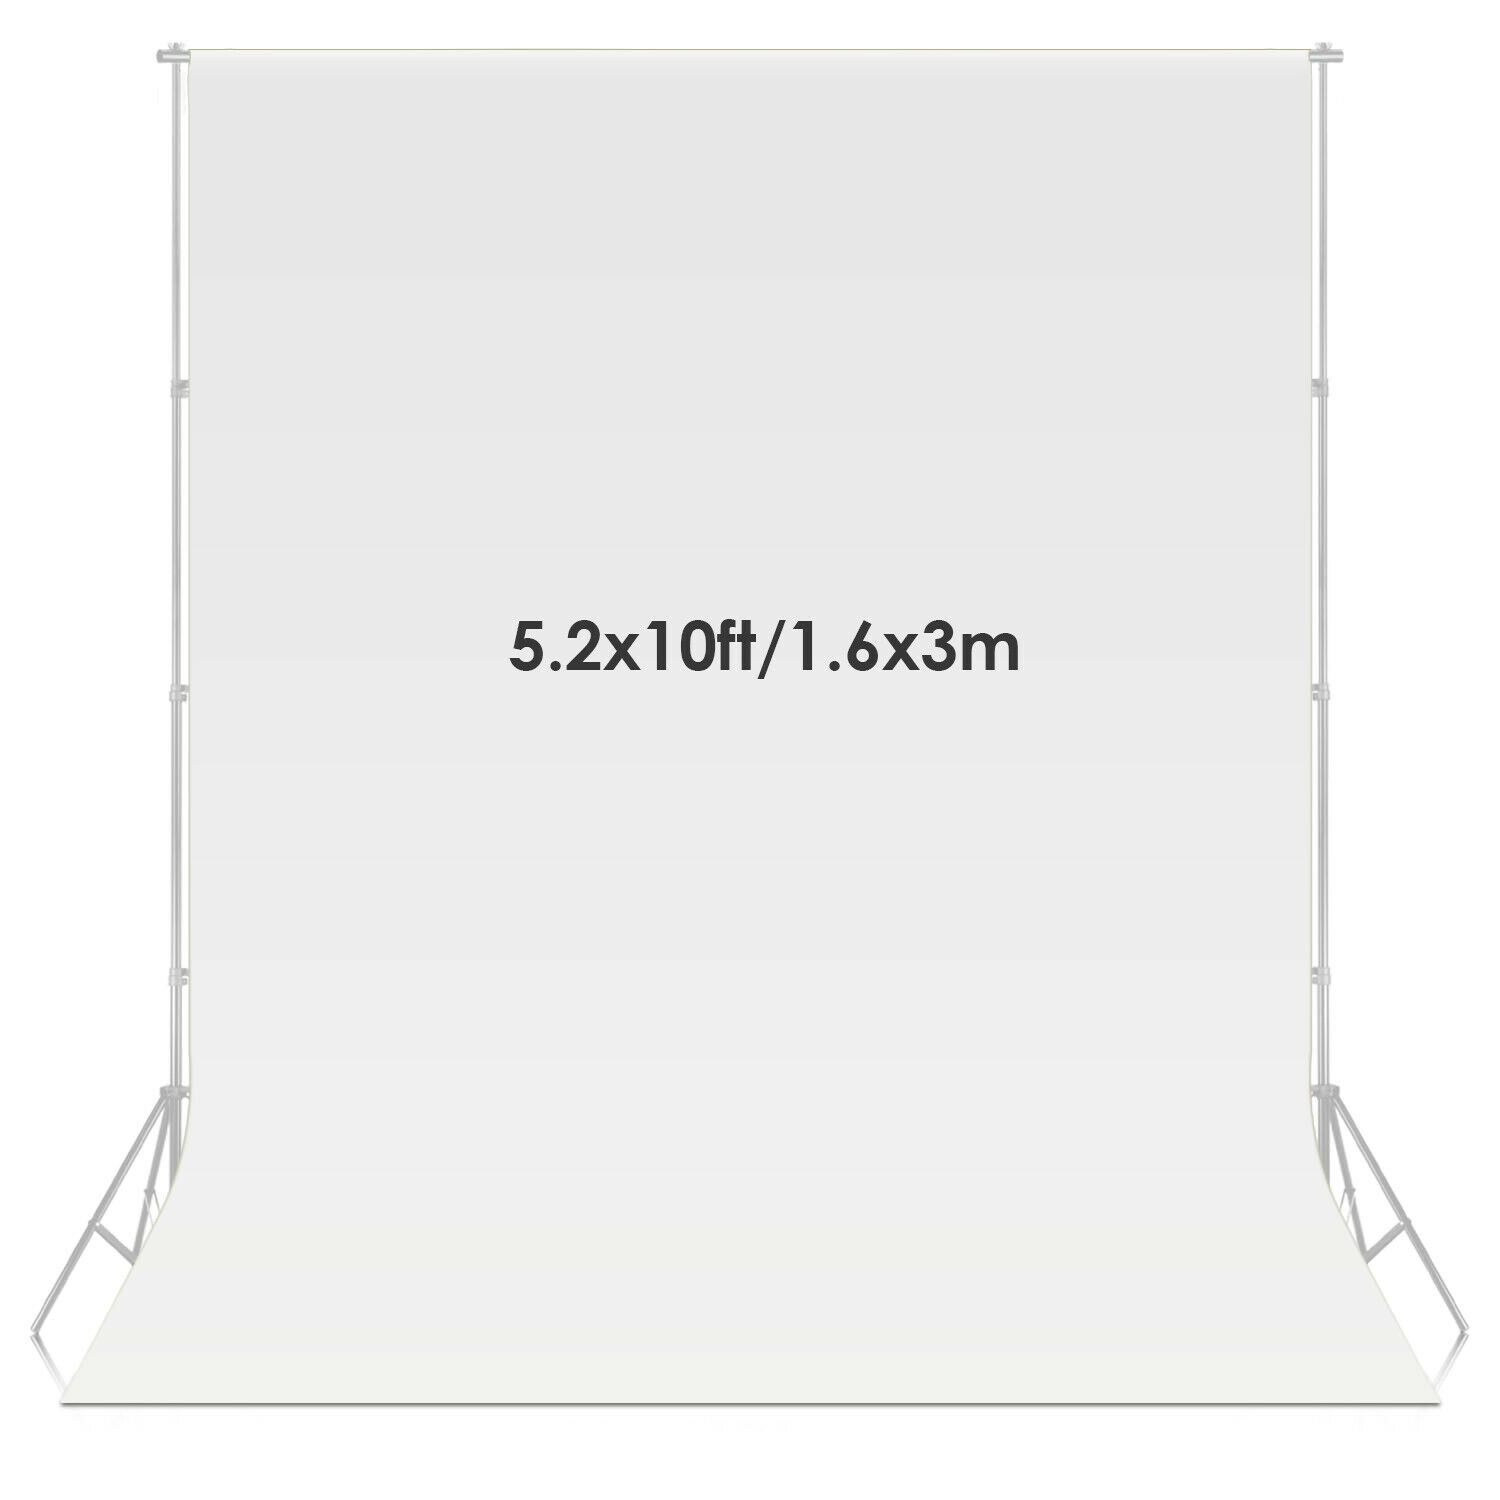 Neewer White Fabric Photography Studio Backdrop Background Screen Material 4